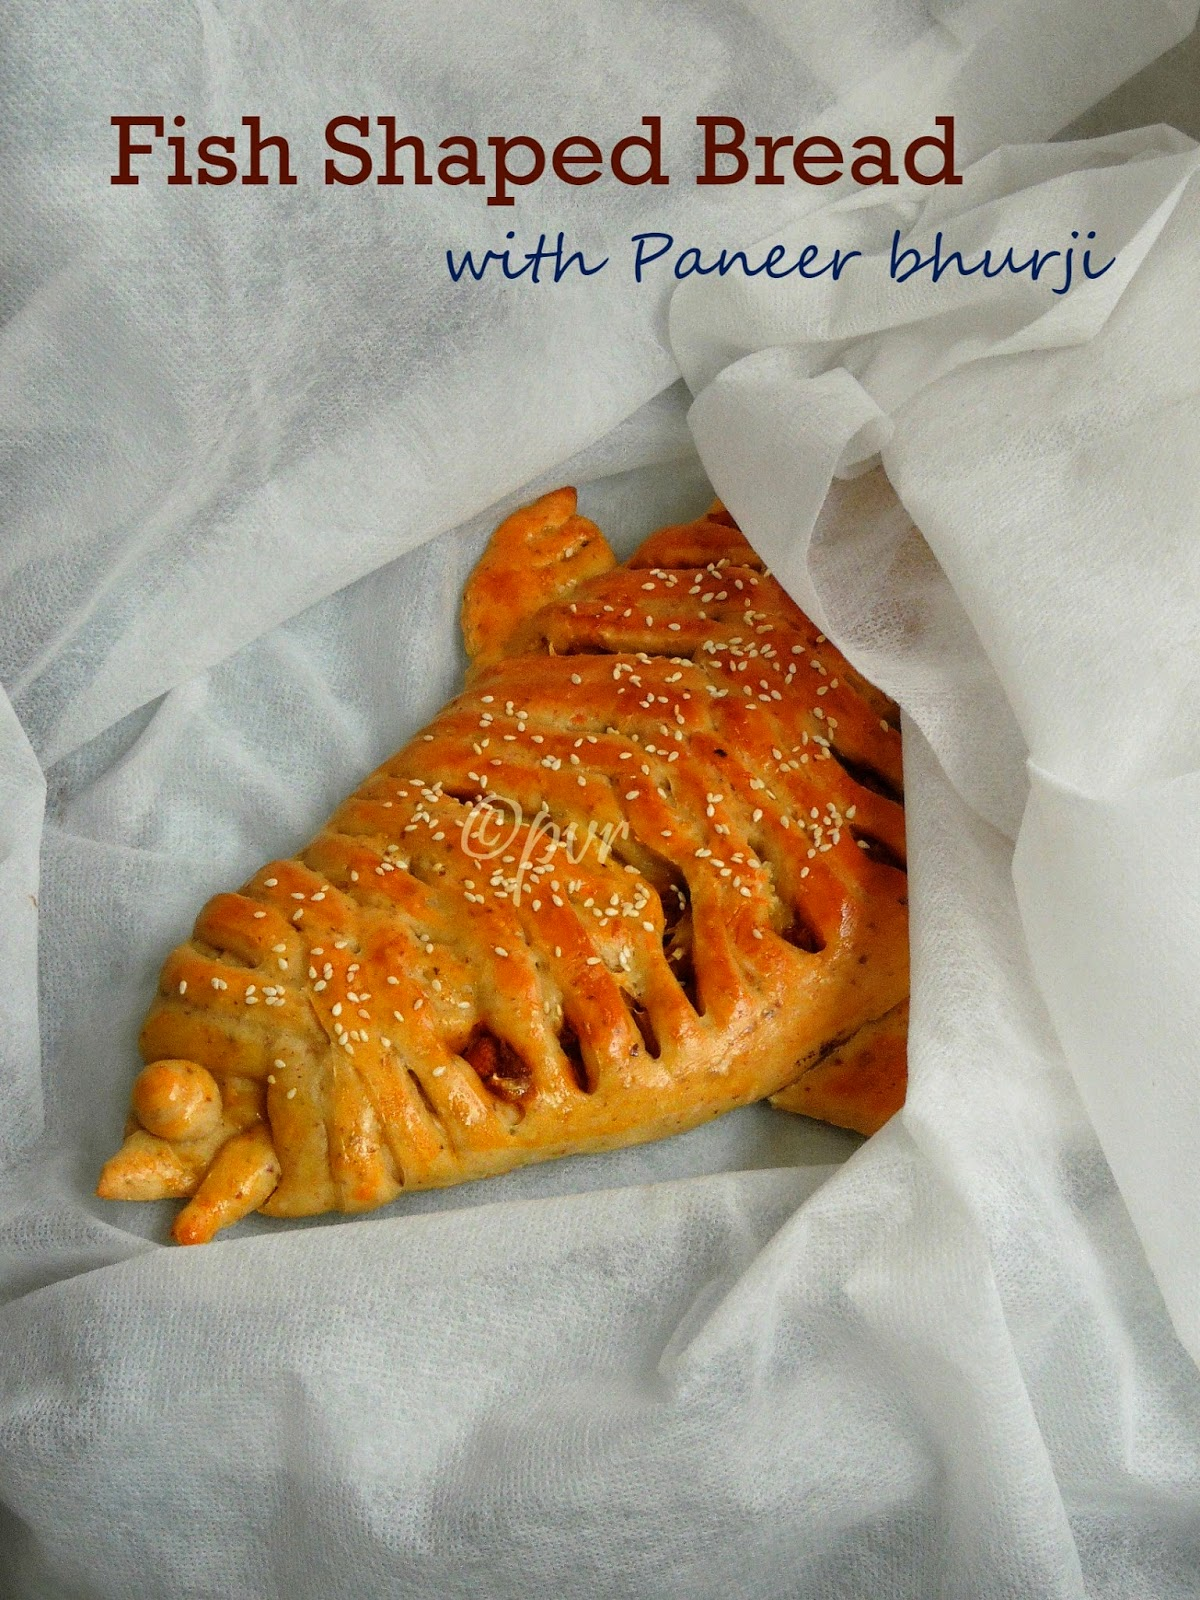 Paneer bhurji stuffed Fish shaped bread